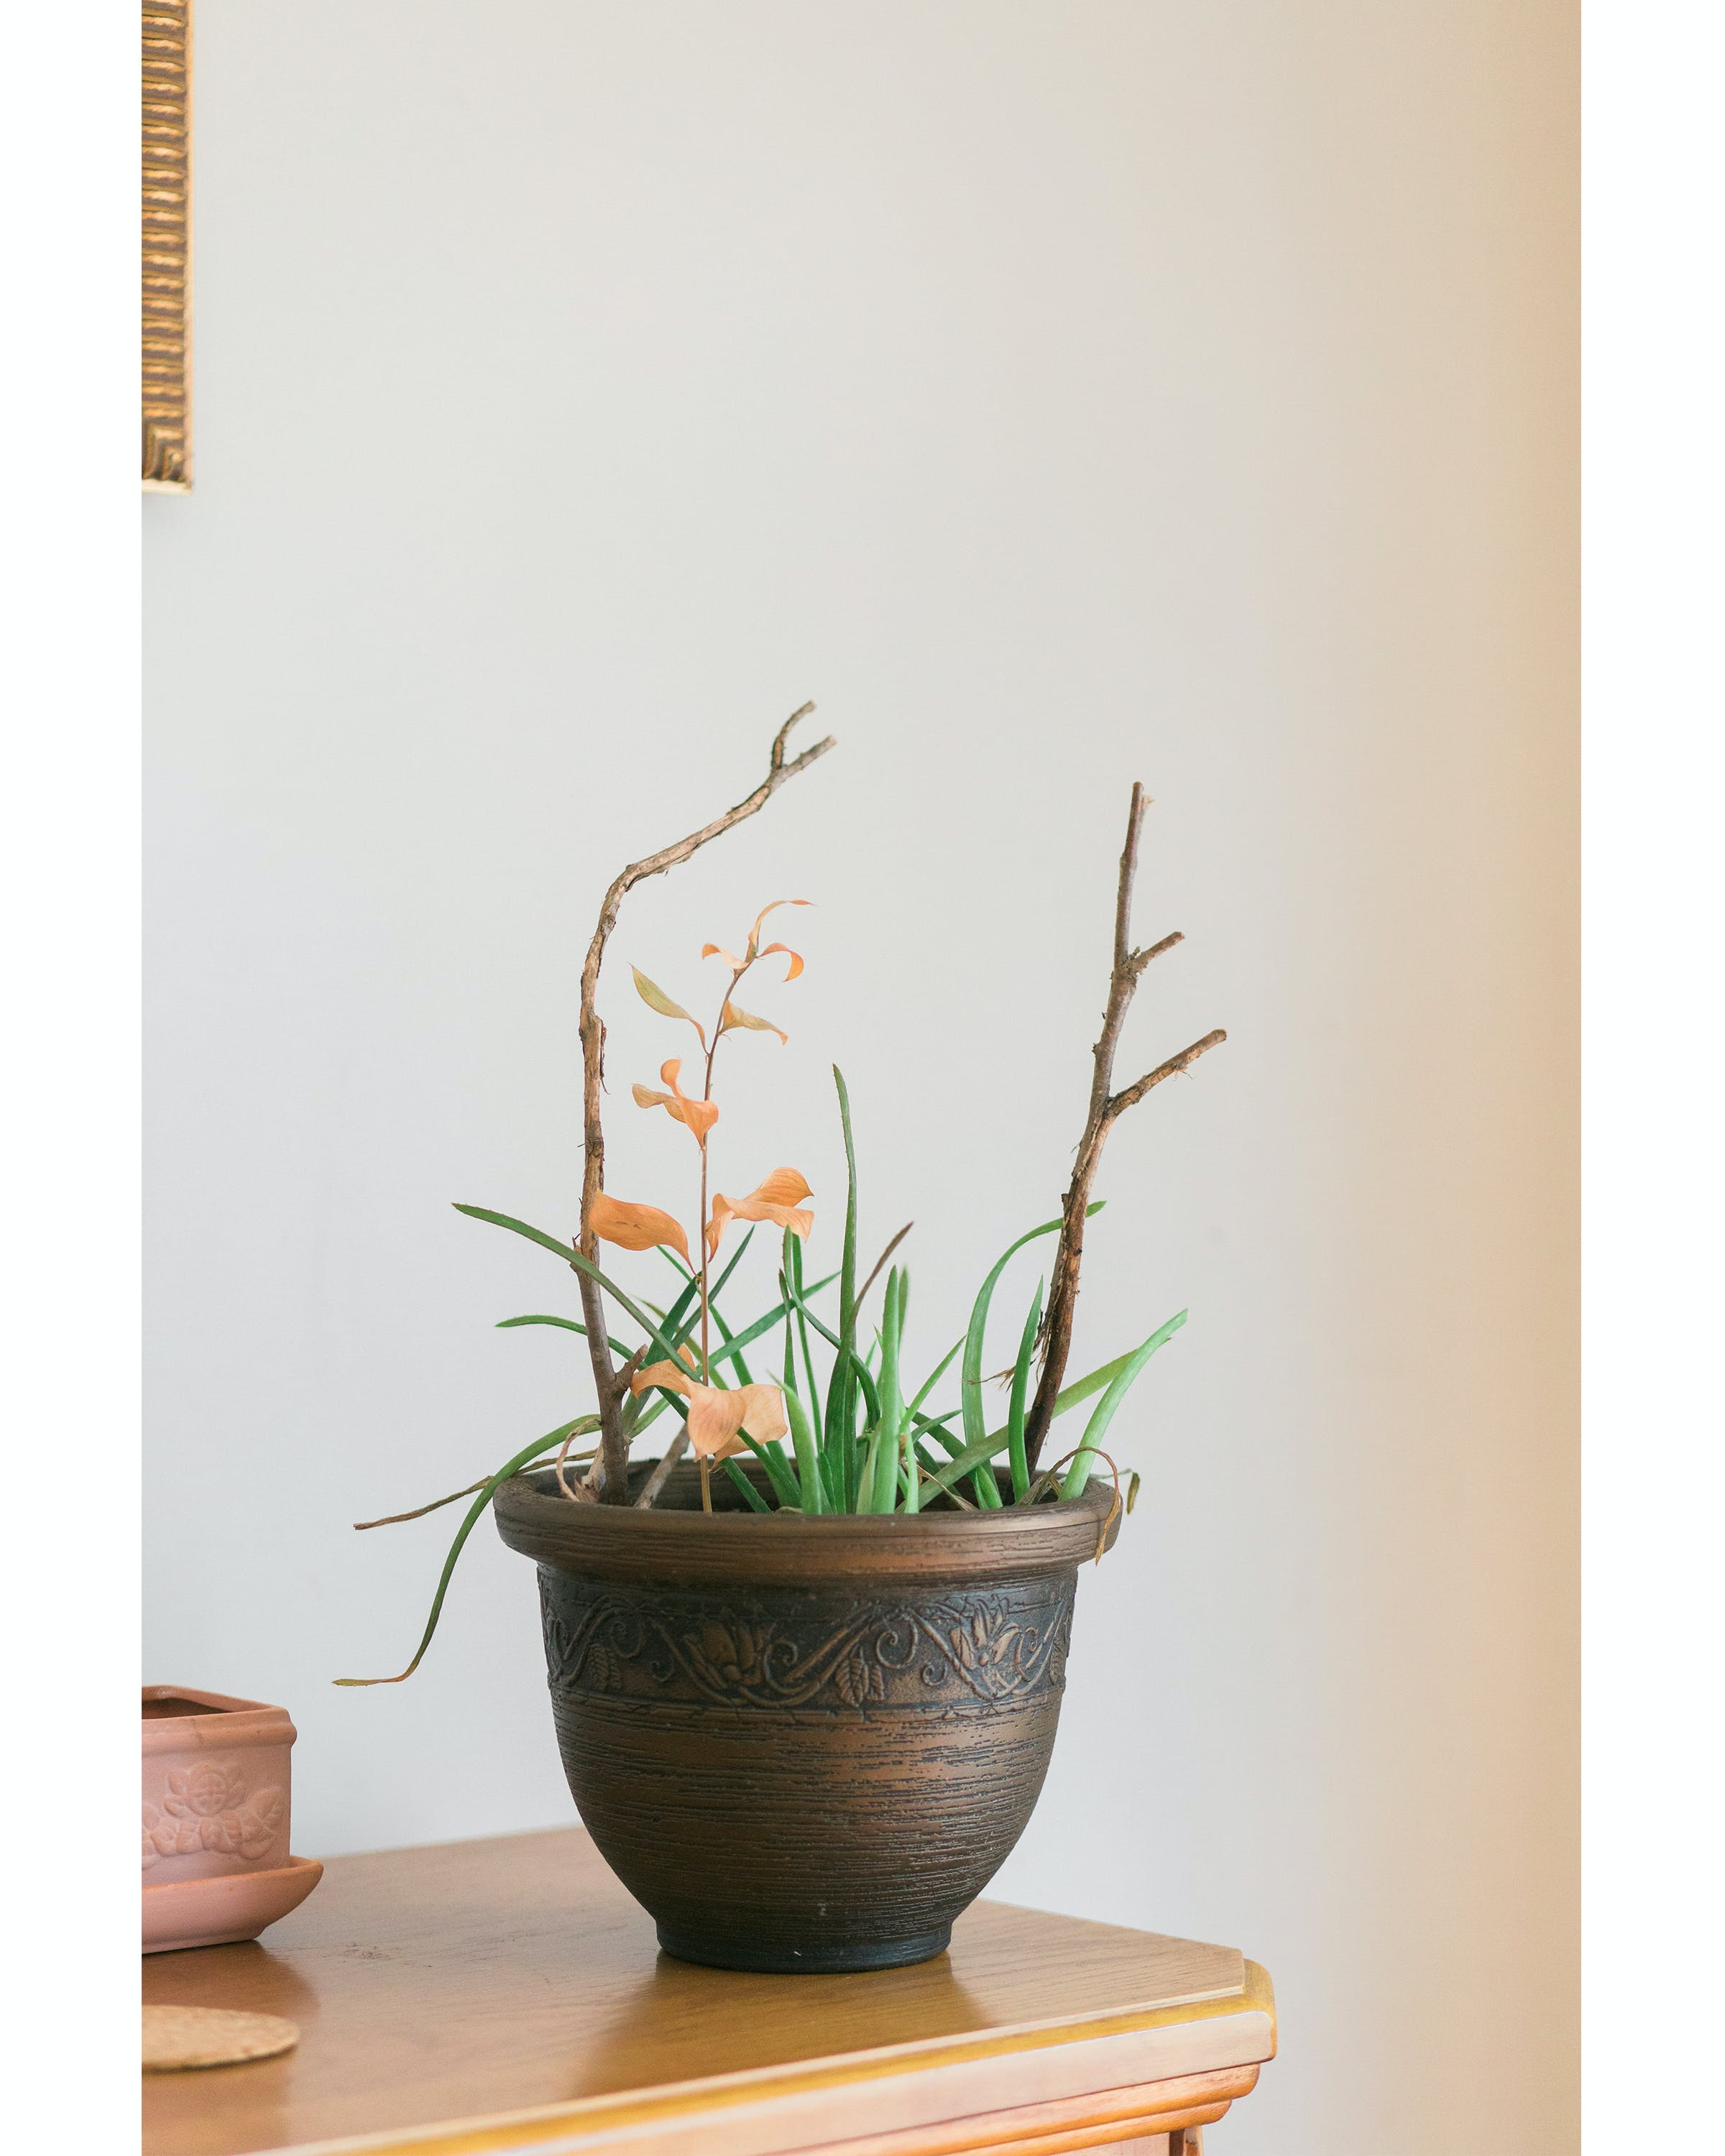 Green Aloe Vera Plant With Brown Ceramic Plant Pot